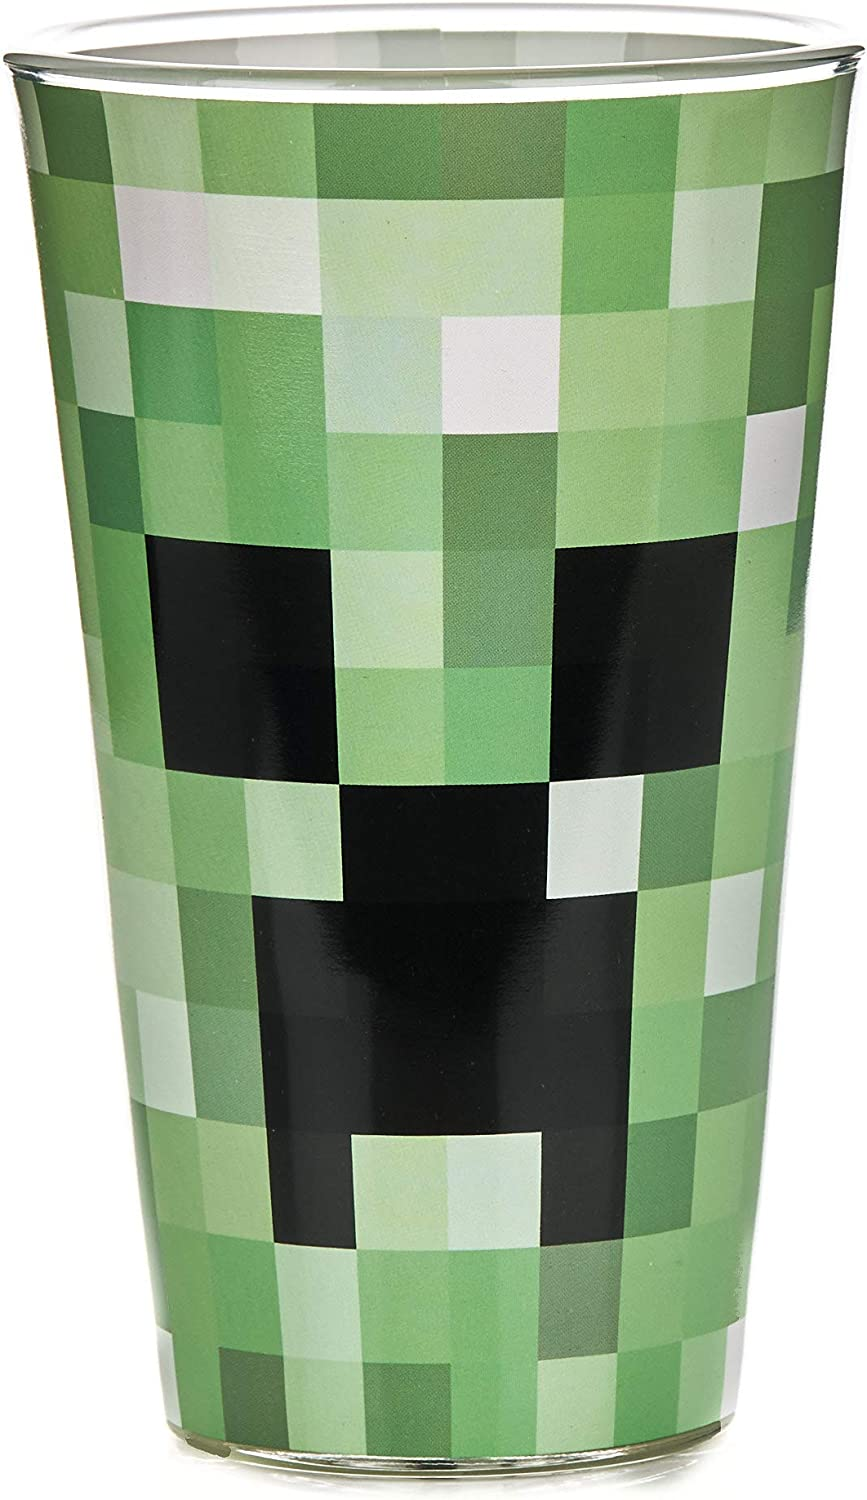 Minecraft Creeper Glass Tumbler 14 oz - Paladone Officially Licensed Merchandise